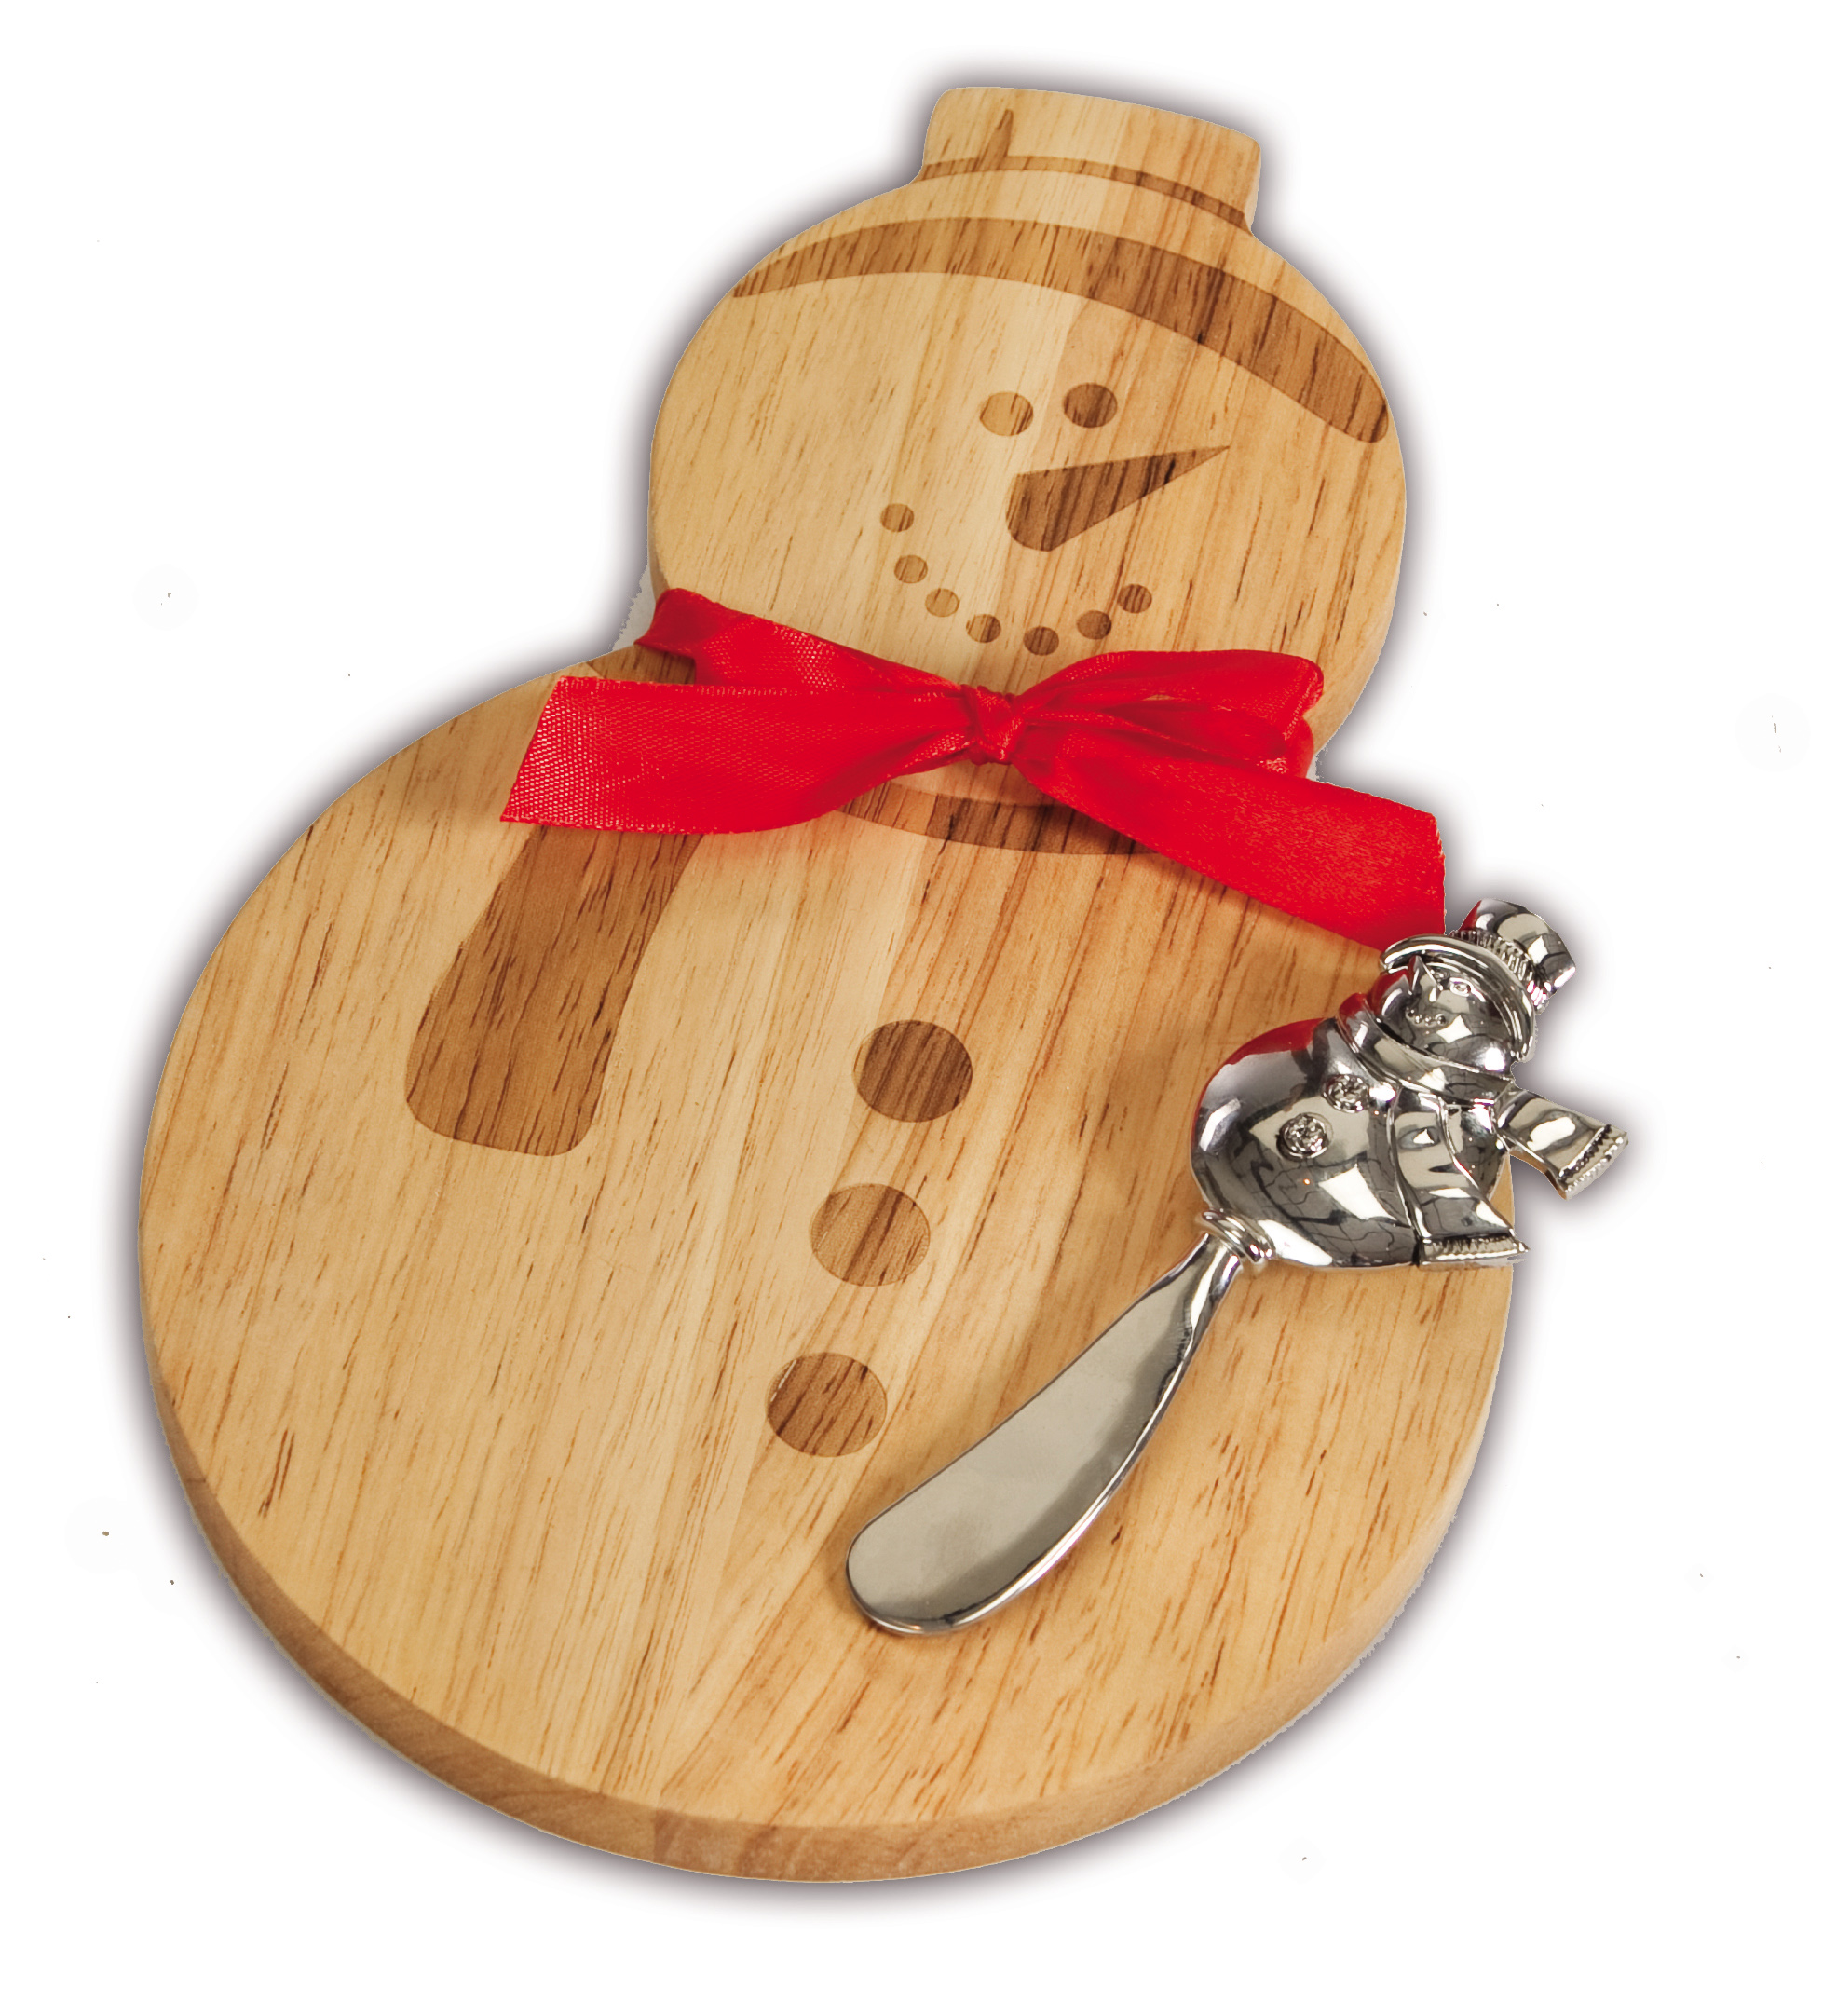 2102_psm-197-snowman-cheese-cutting-board